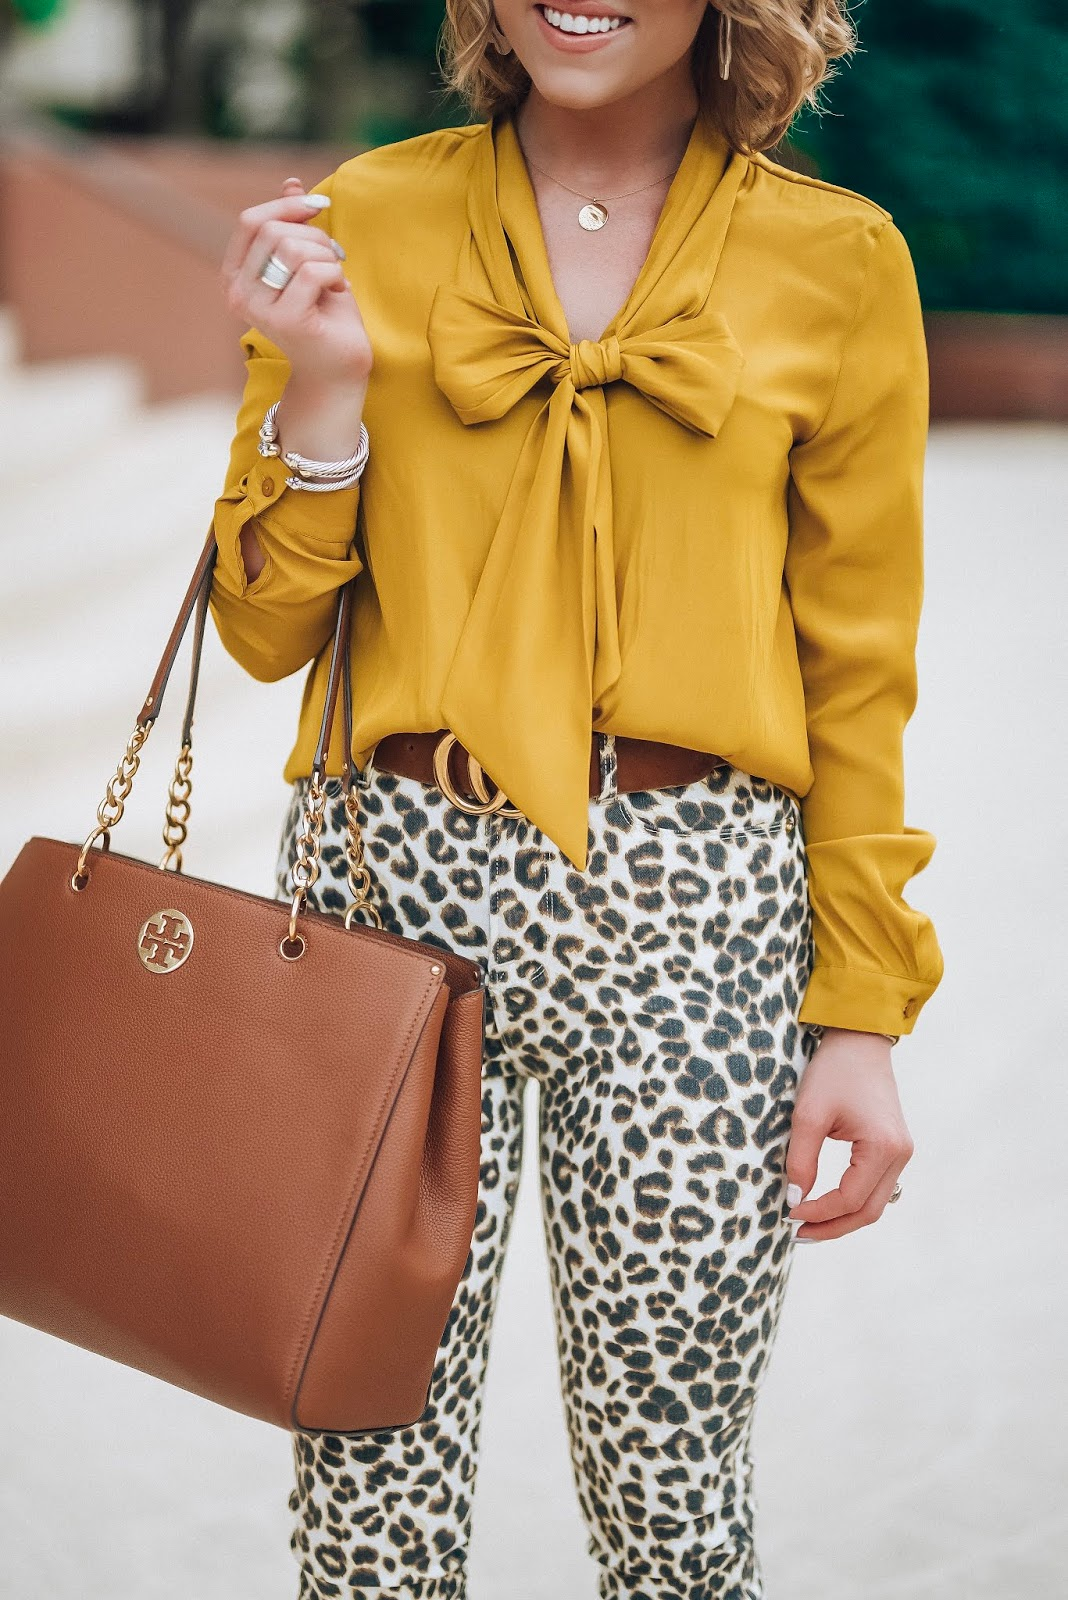 Leopard Denim + Mustard Yellow: Nordstrom Anniversary Look Still In Stock - Something Delightful Blog